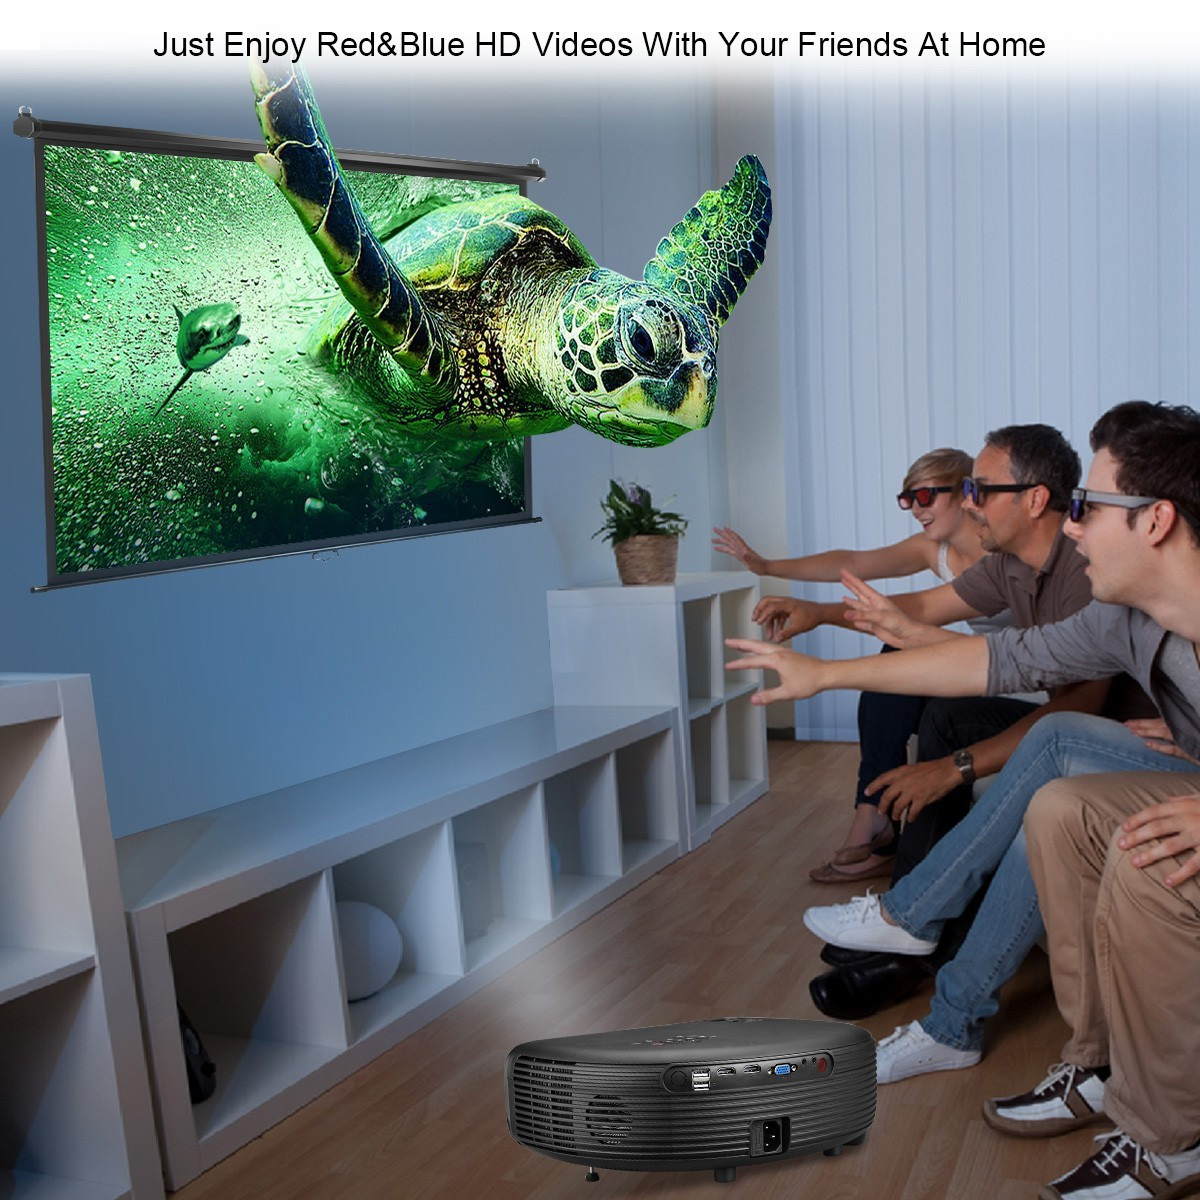 Excelvan CL760 Newly Semicircle Design CL760 3200 Lumens LED Video Projector With 1280x800 Native Resolution Support 1080P HD Movie for Laptop Xbox USB Speaker Smartphone TV Box- Black EU